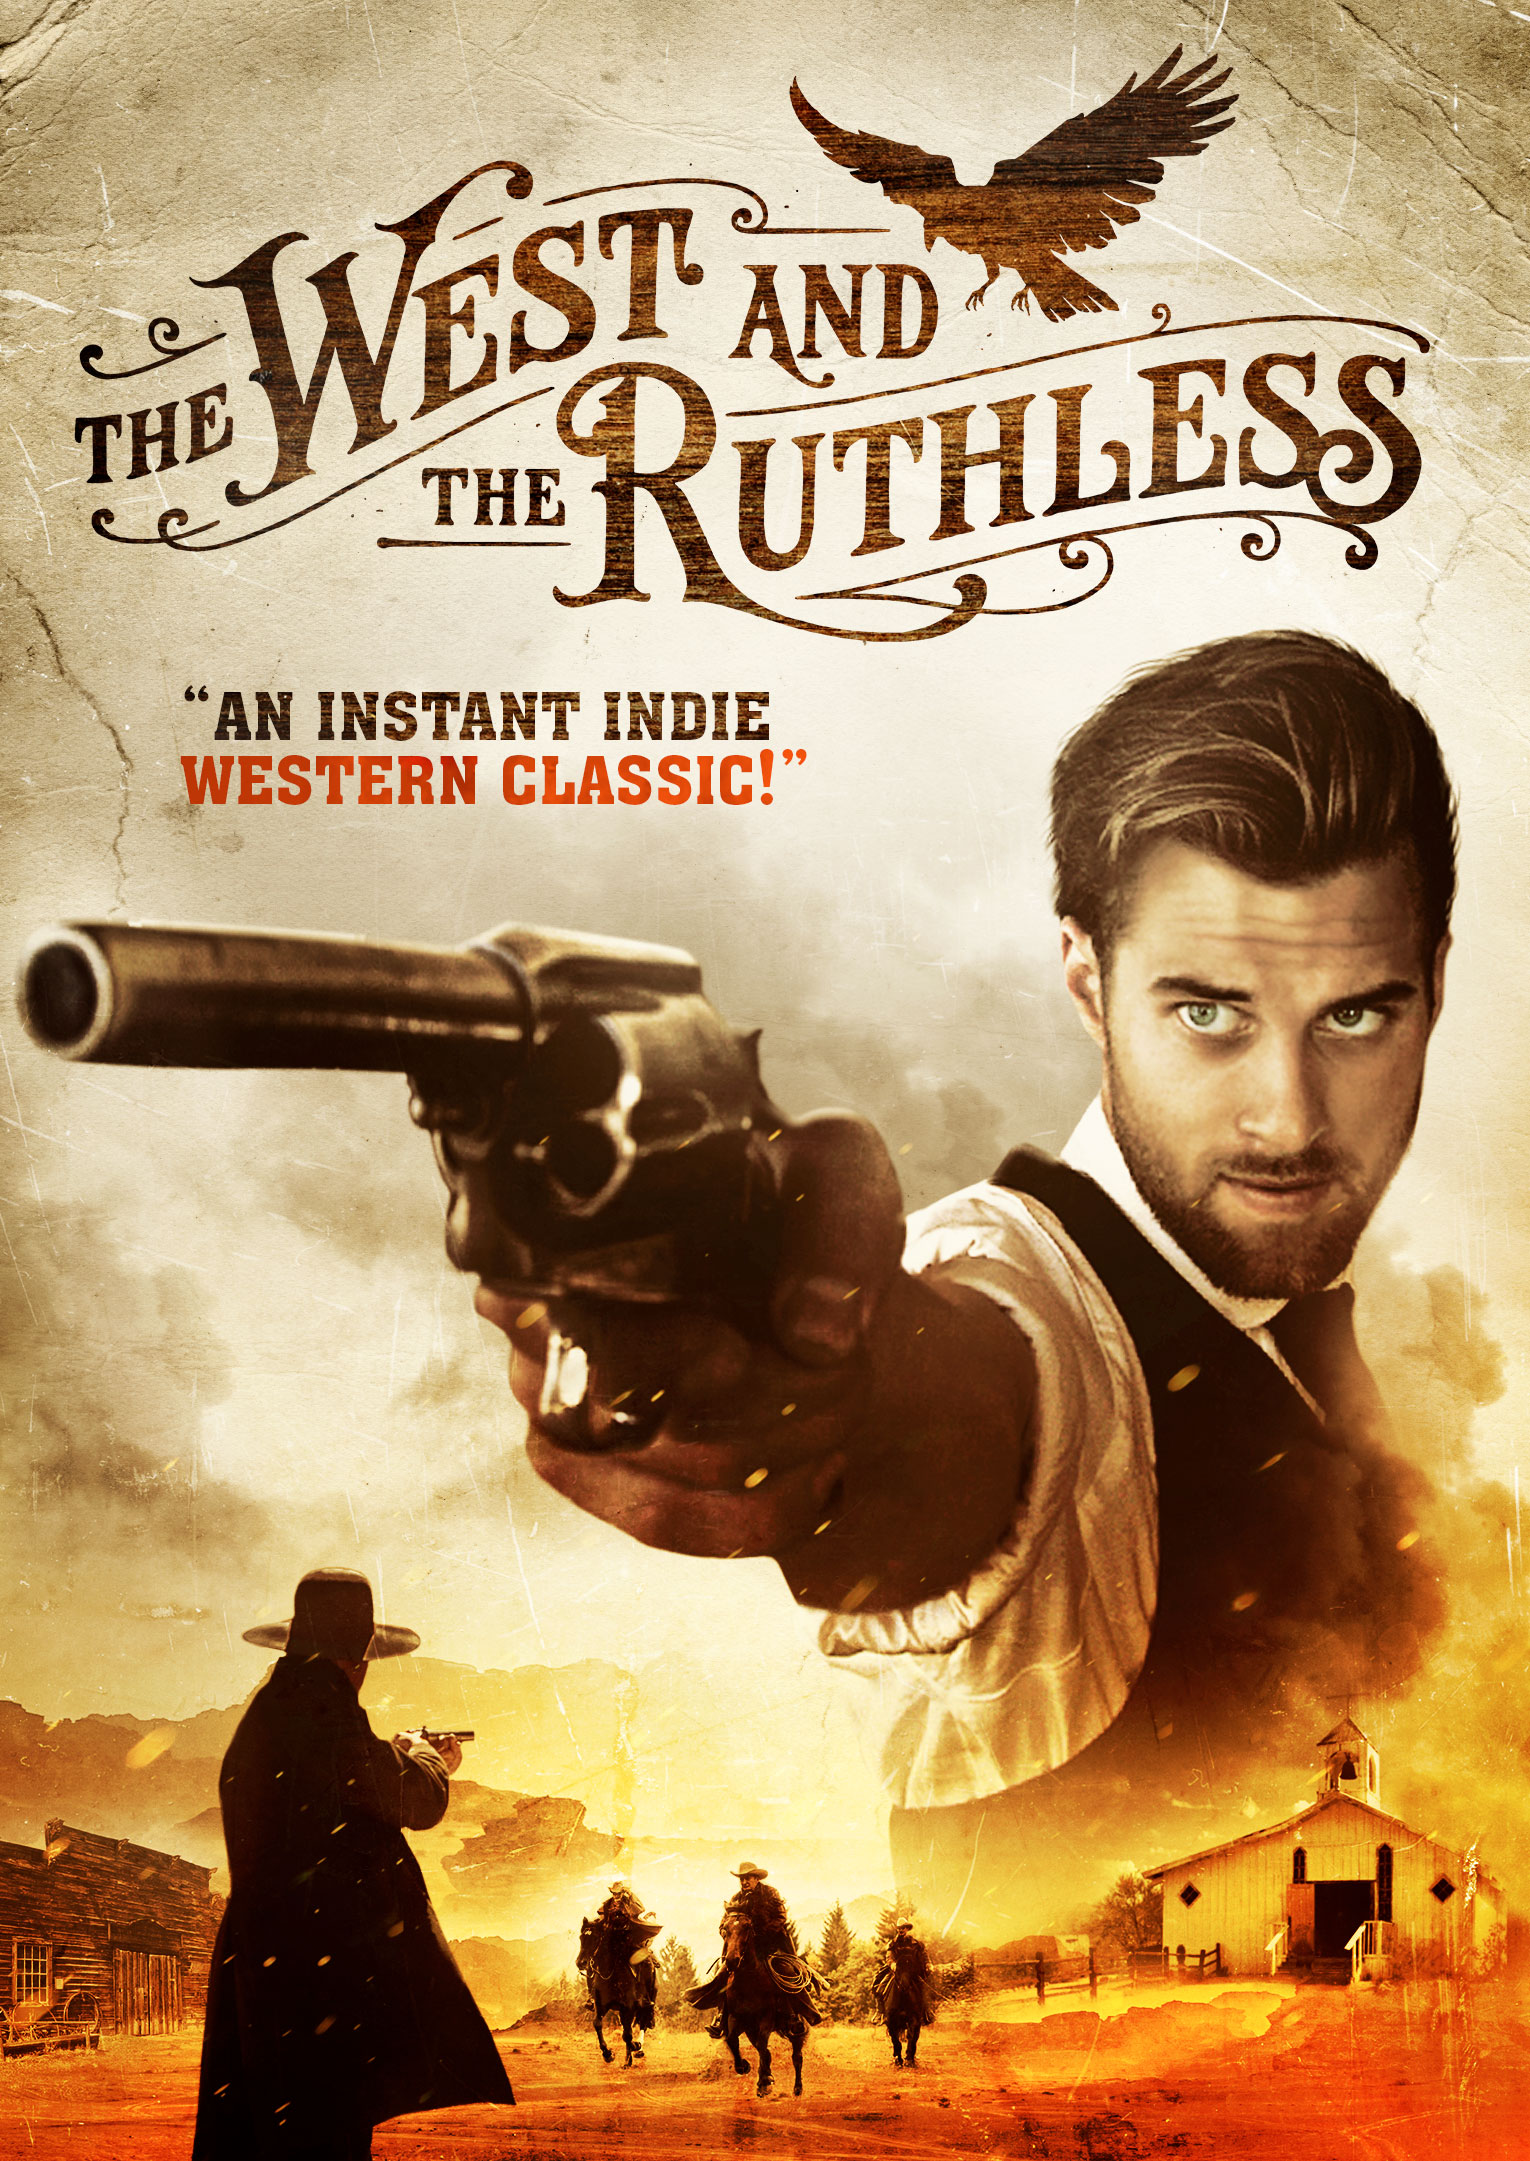 The West and the Ruthless, Cover (North America, Australia, New Zealand)